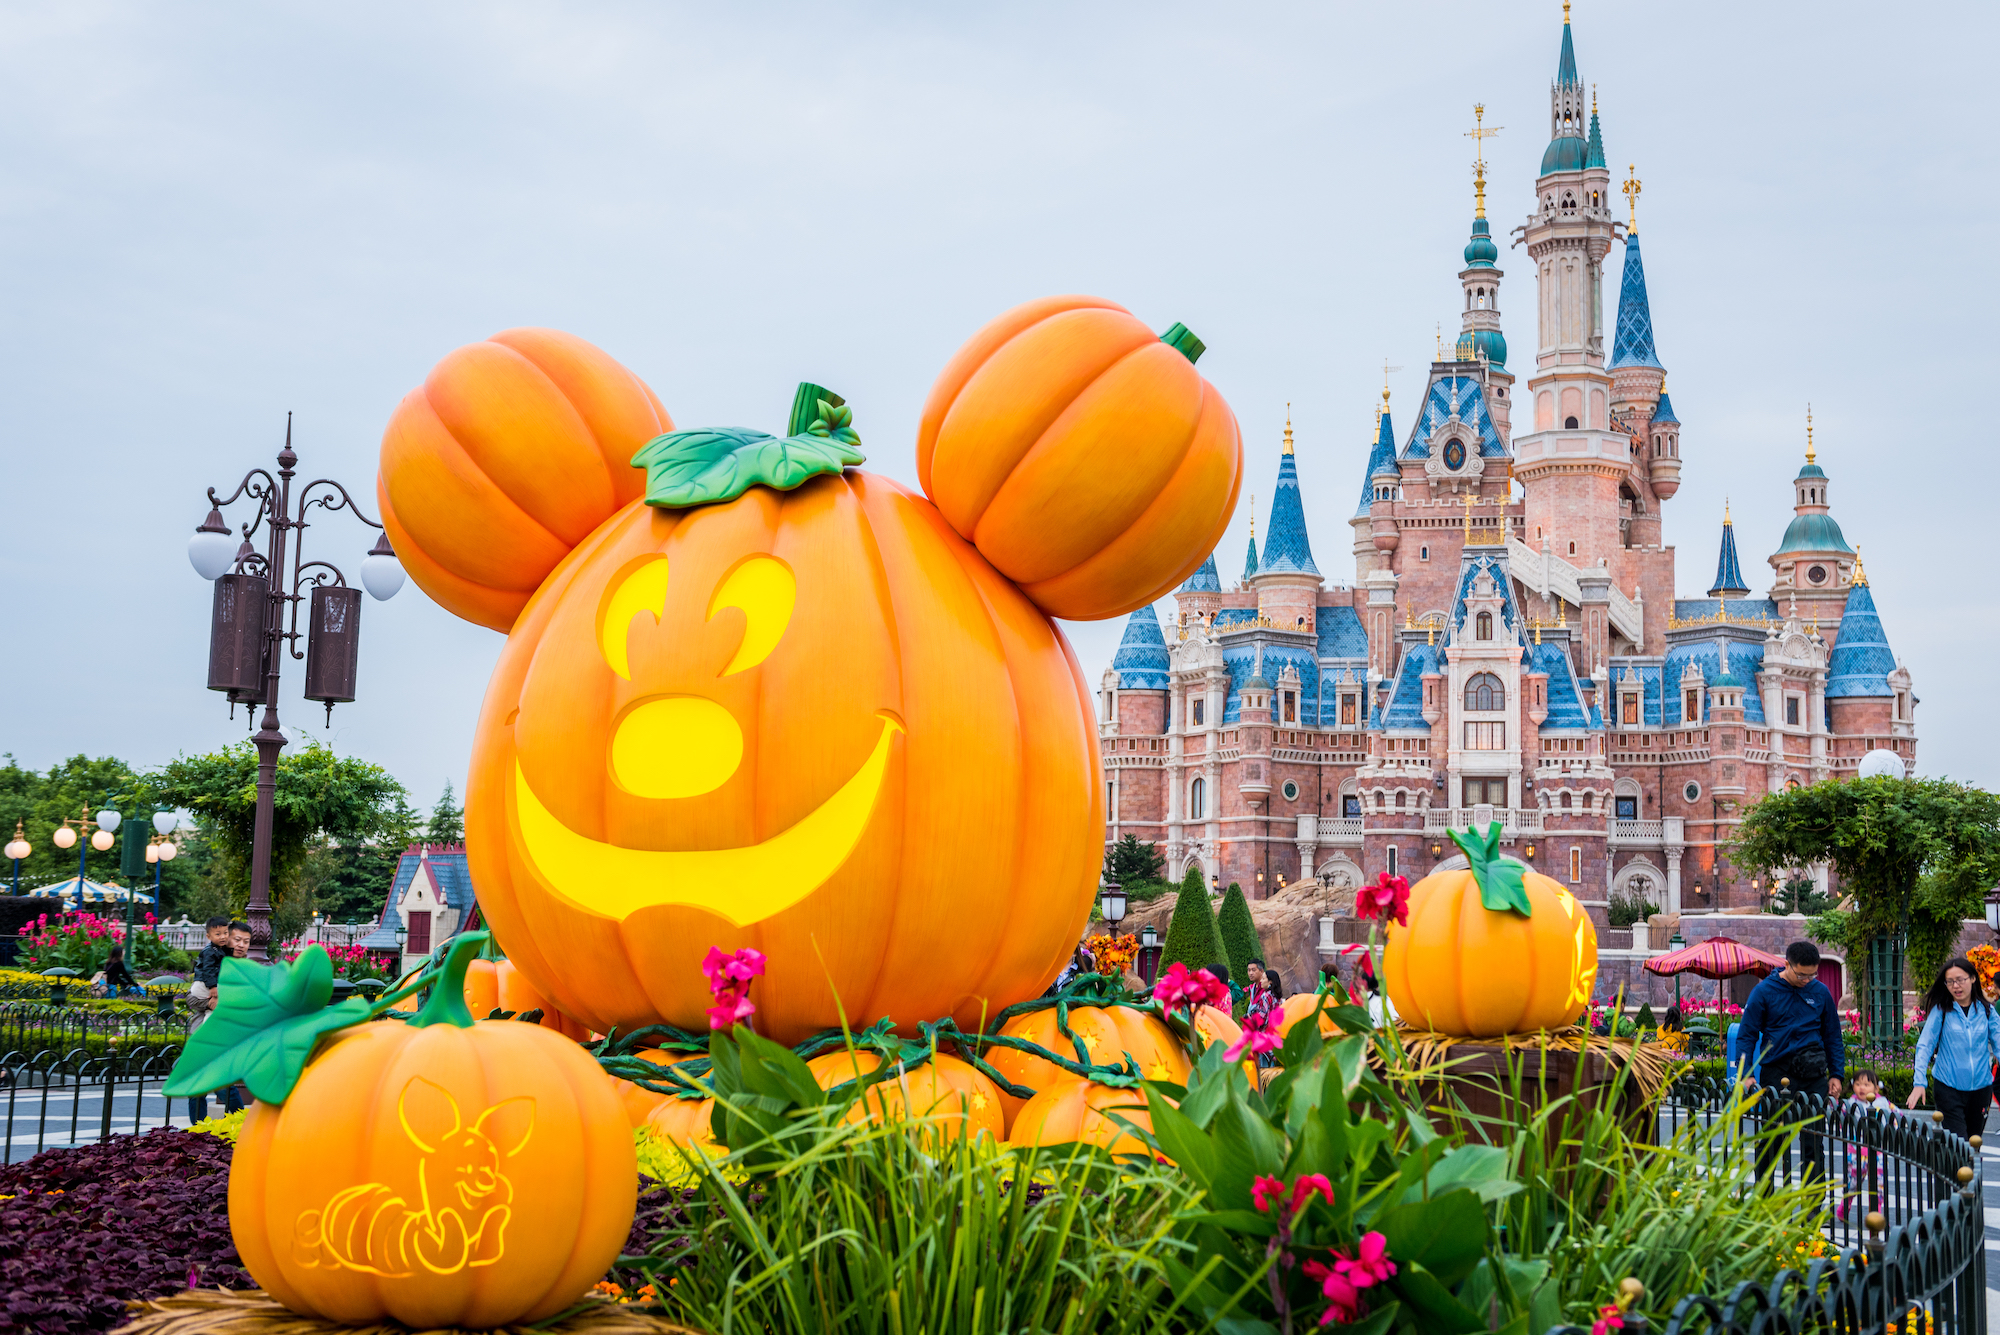 A Halloween-themed pumpkin featuring Disney's Mickey Mouse on display at Shanghai Disney Resort on October 14, 2018 in Shanghai, China.